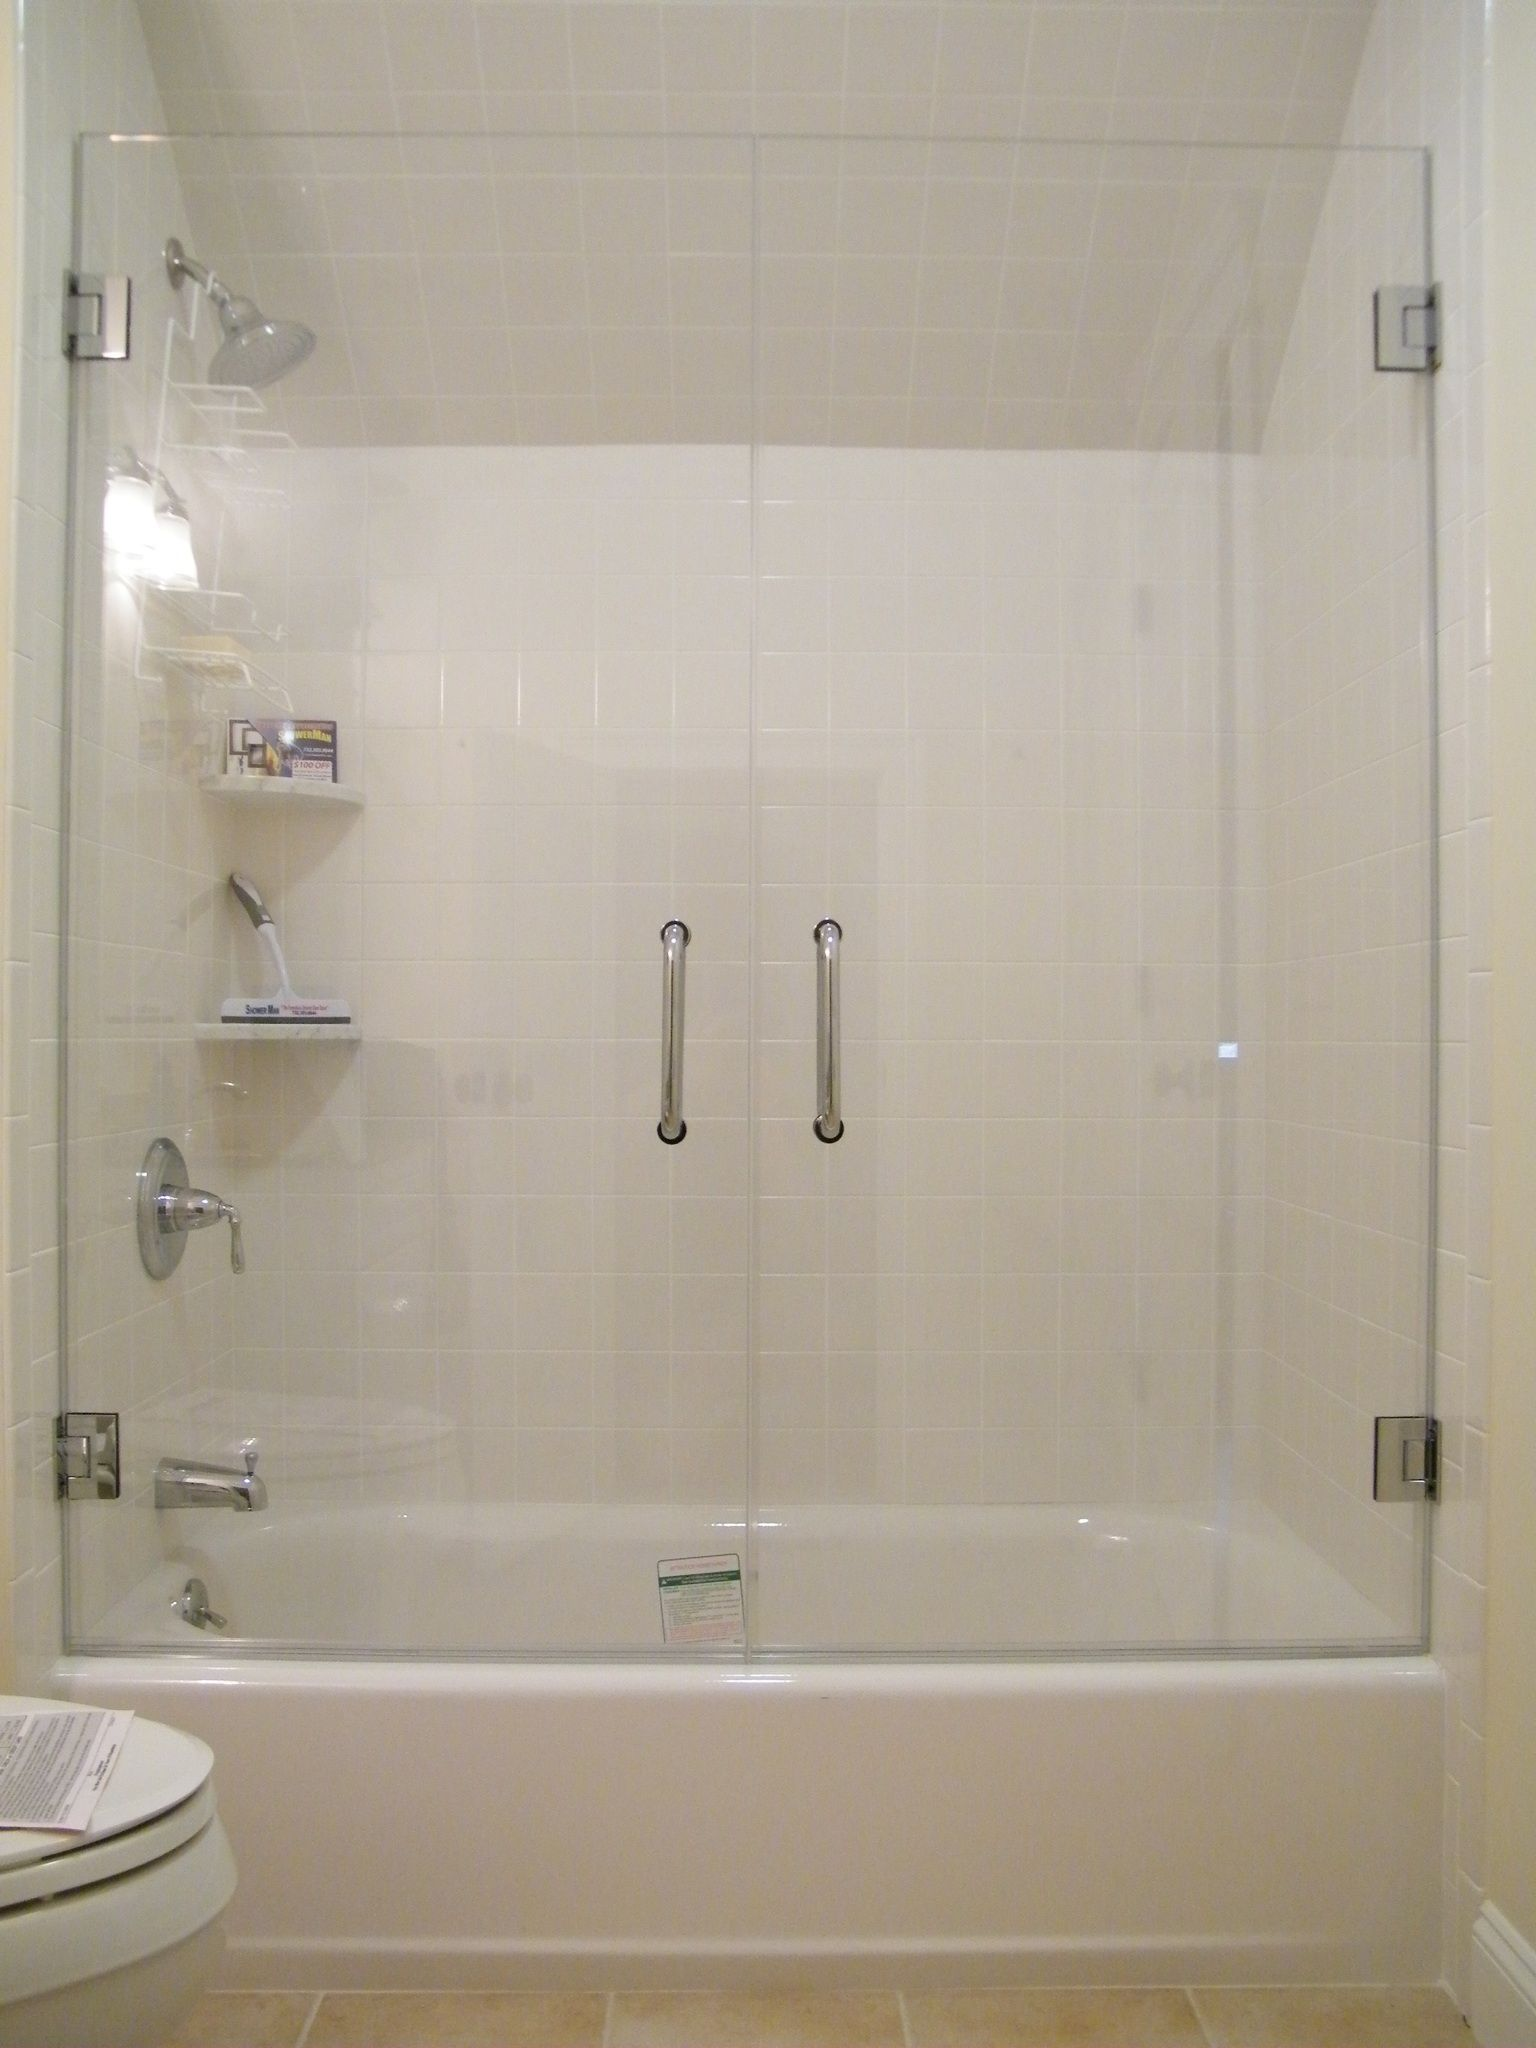 Bathroom Shower In Monmouth County Nj Bathtub Shower Doors Tub